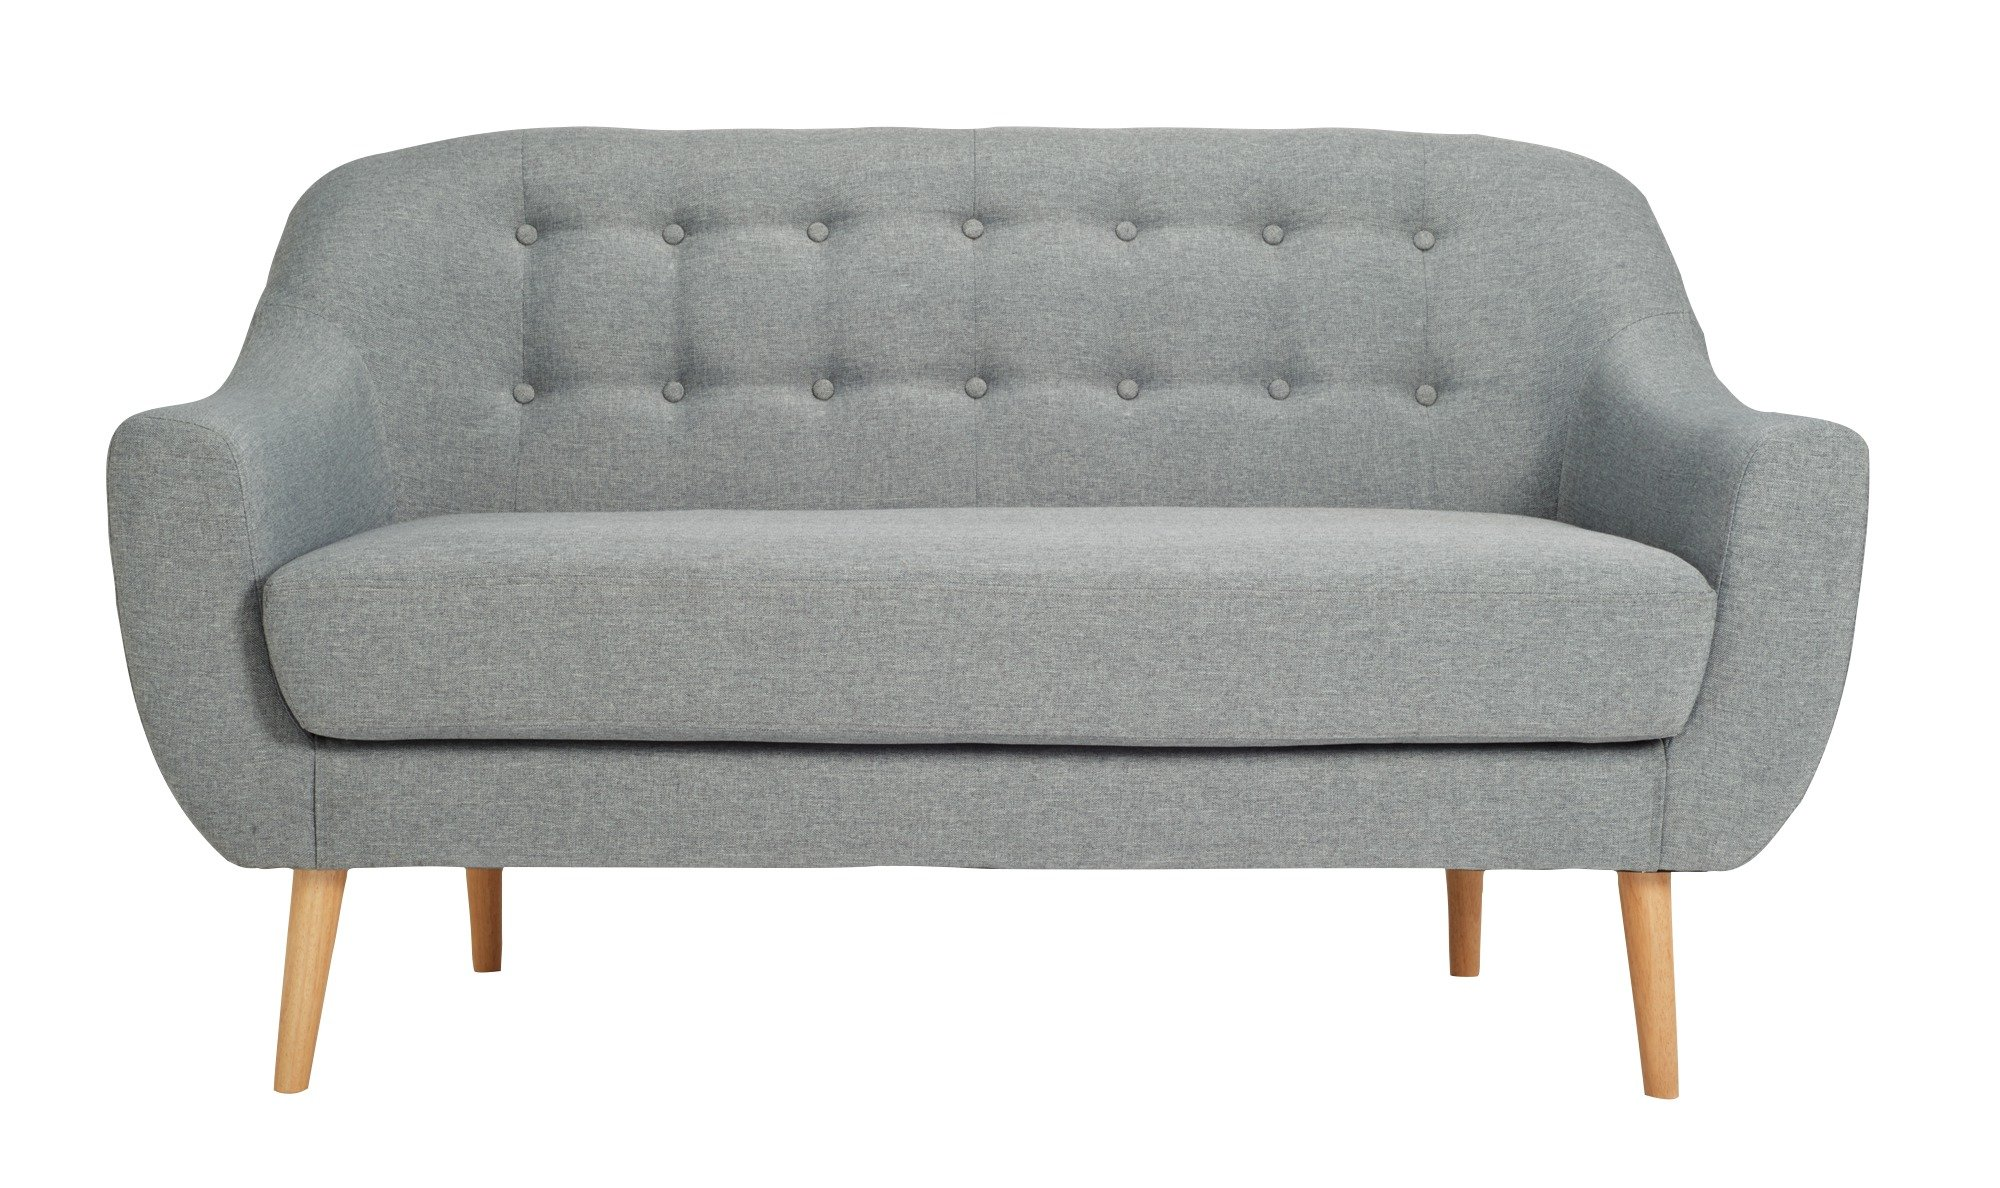 Hygena 2 Seater Fabric Sofa in a Box Charcoal : 7094552RZ001A from currentoffers.co.uk size 2000 x 1188 jpeg 344kB